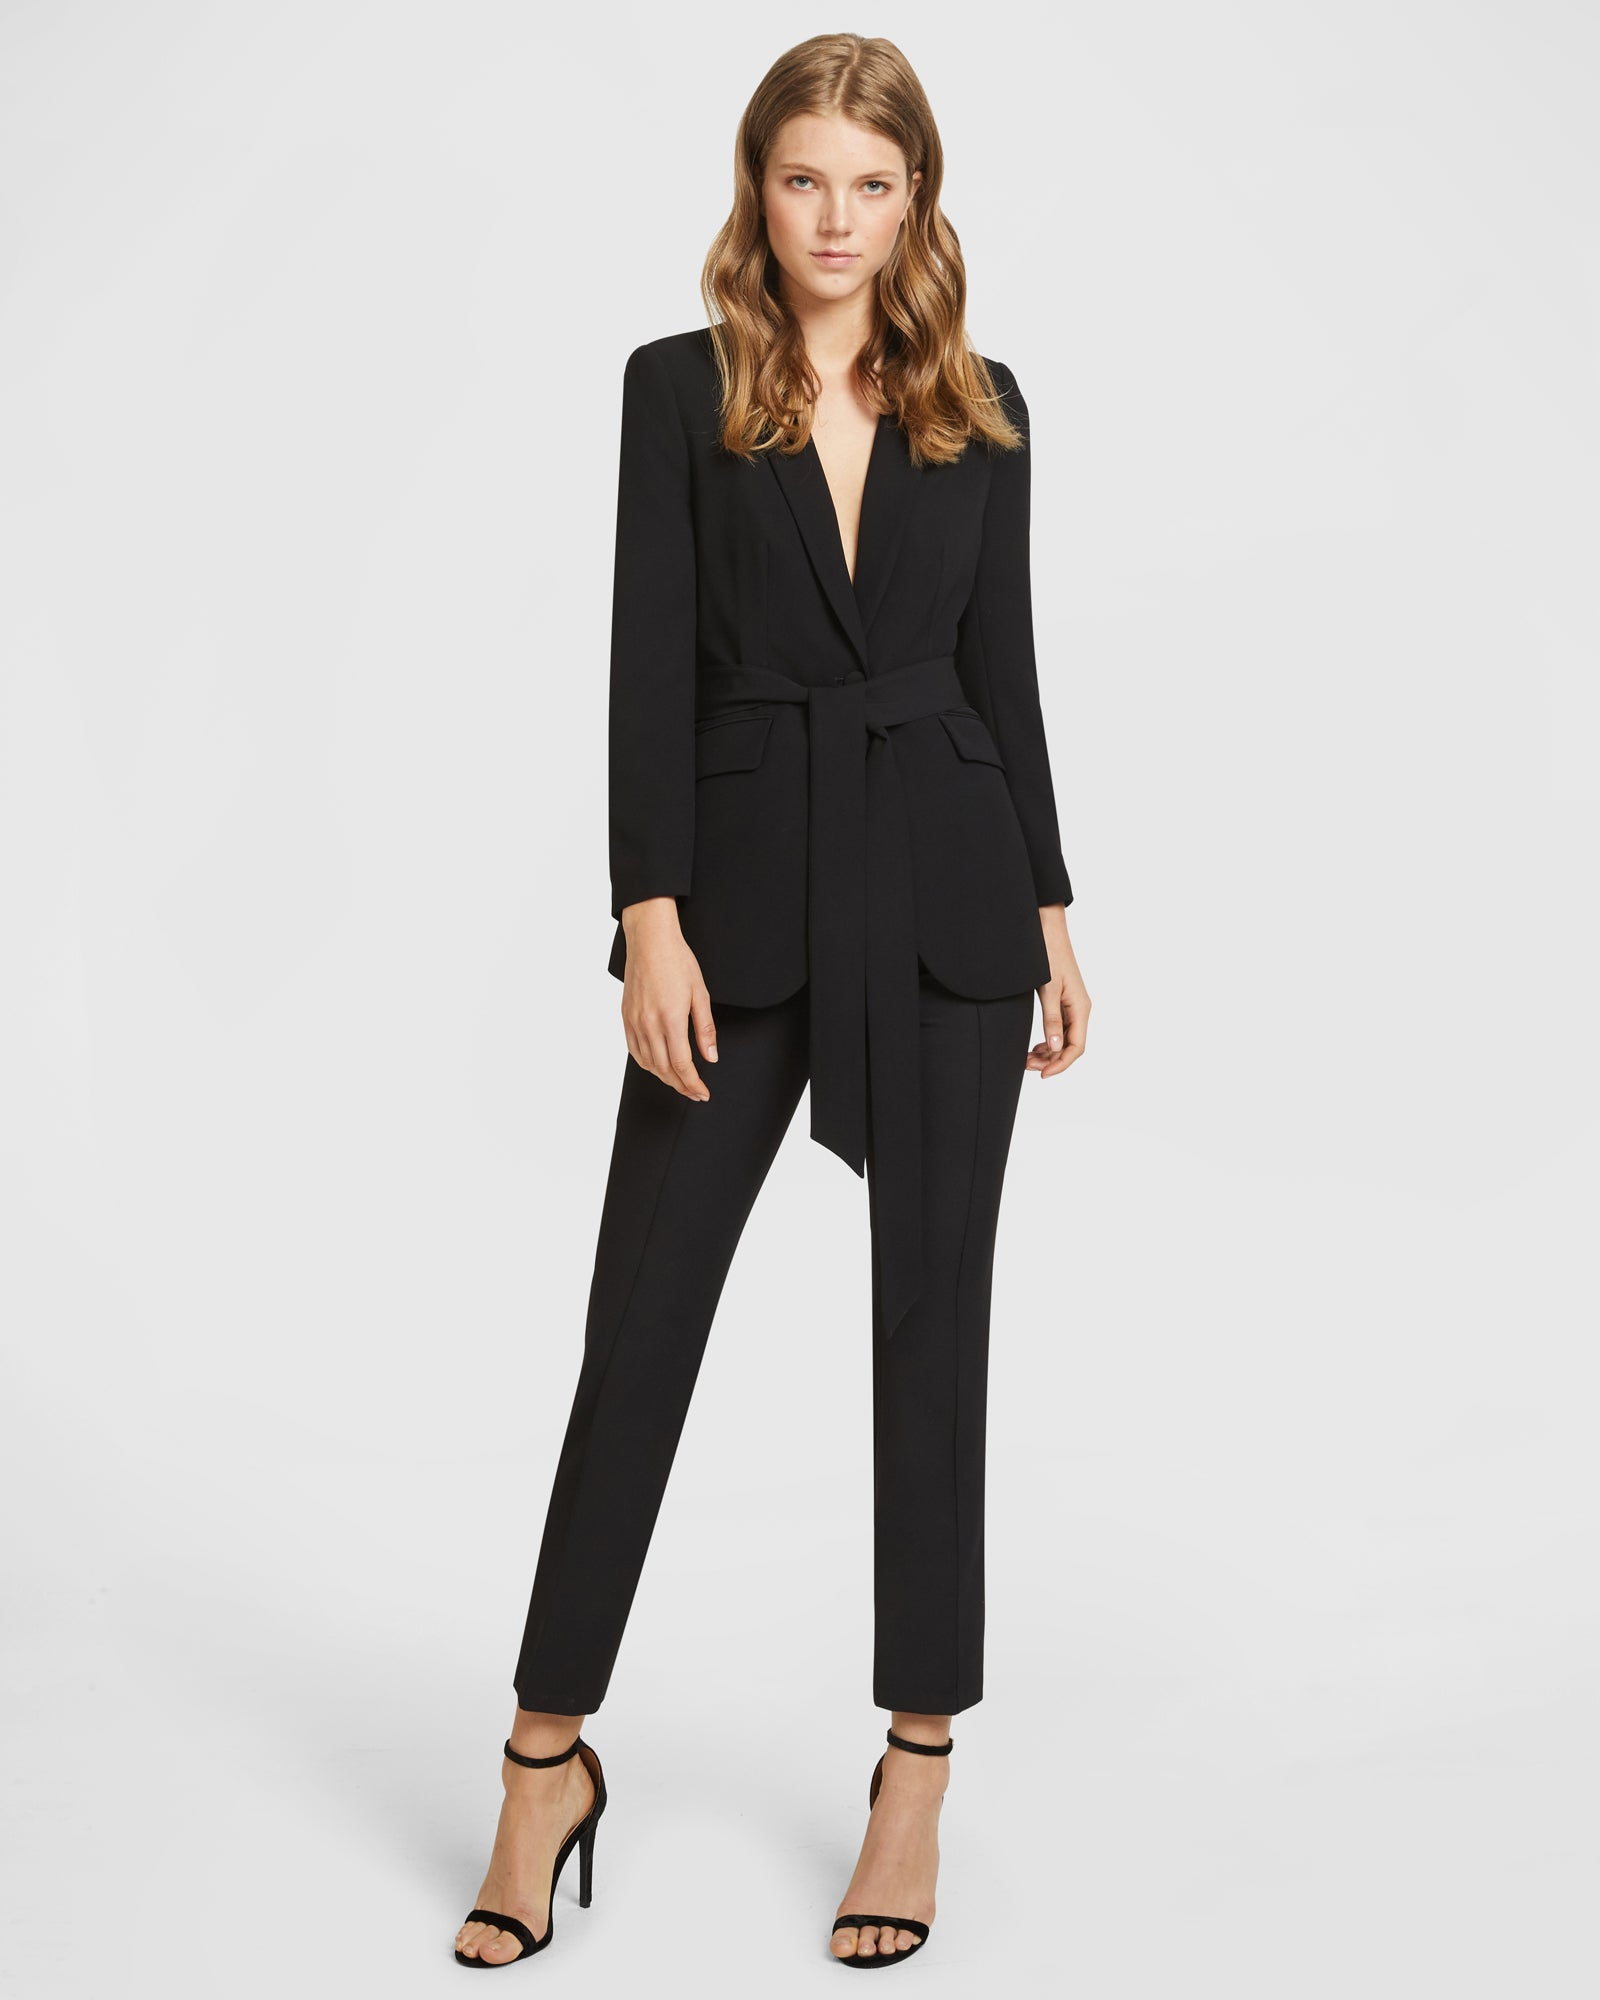 Belted Suit Set - Slim Leg Trousers - Black